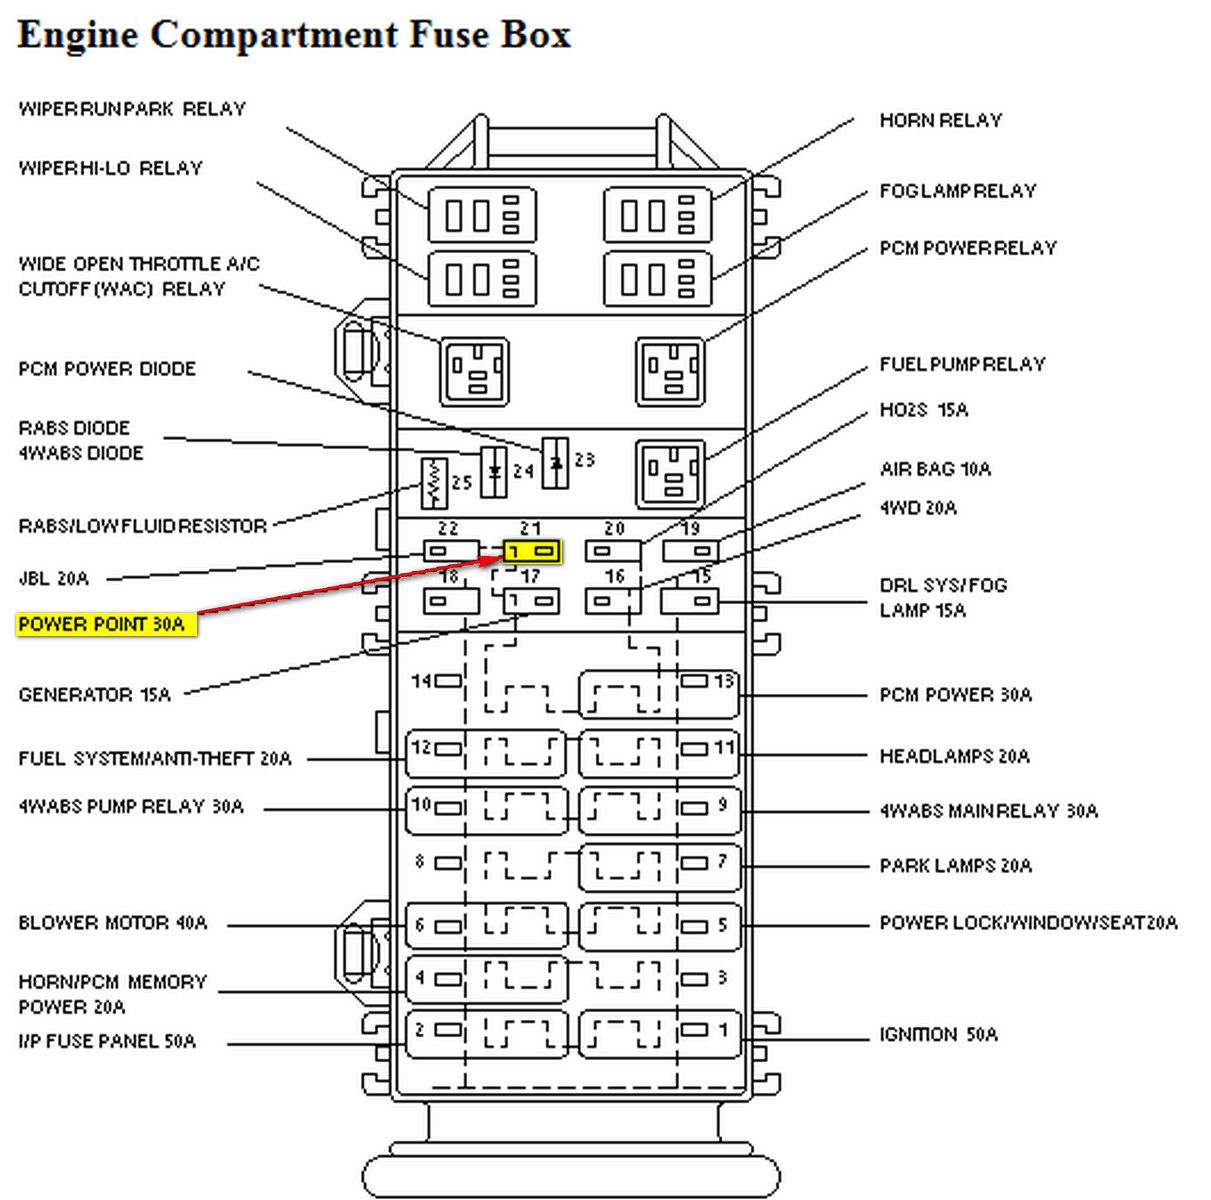 small resolution of wrg 4838 2002 ford f 150 fx4 fuse panel diagram 94 lincoln town car fuse diagram